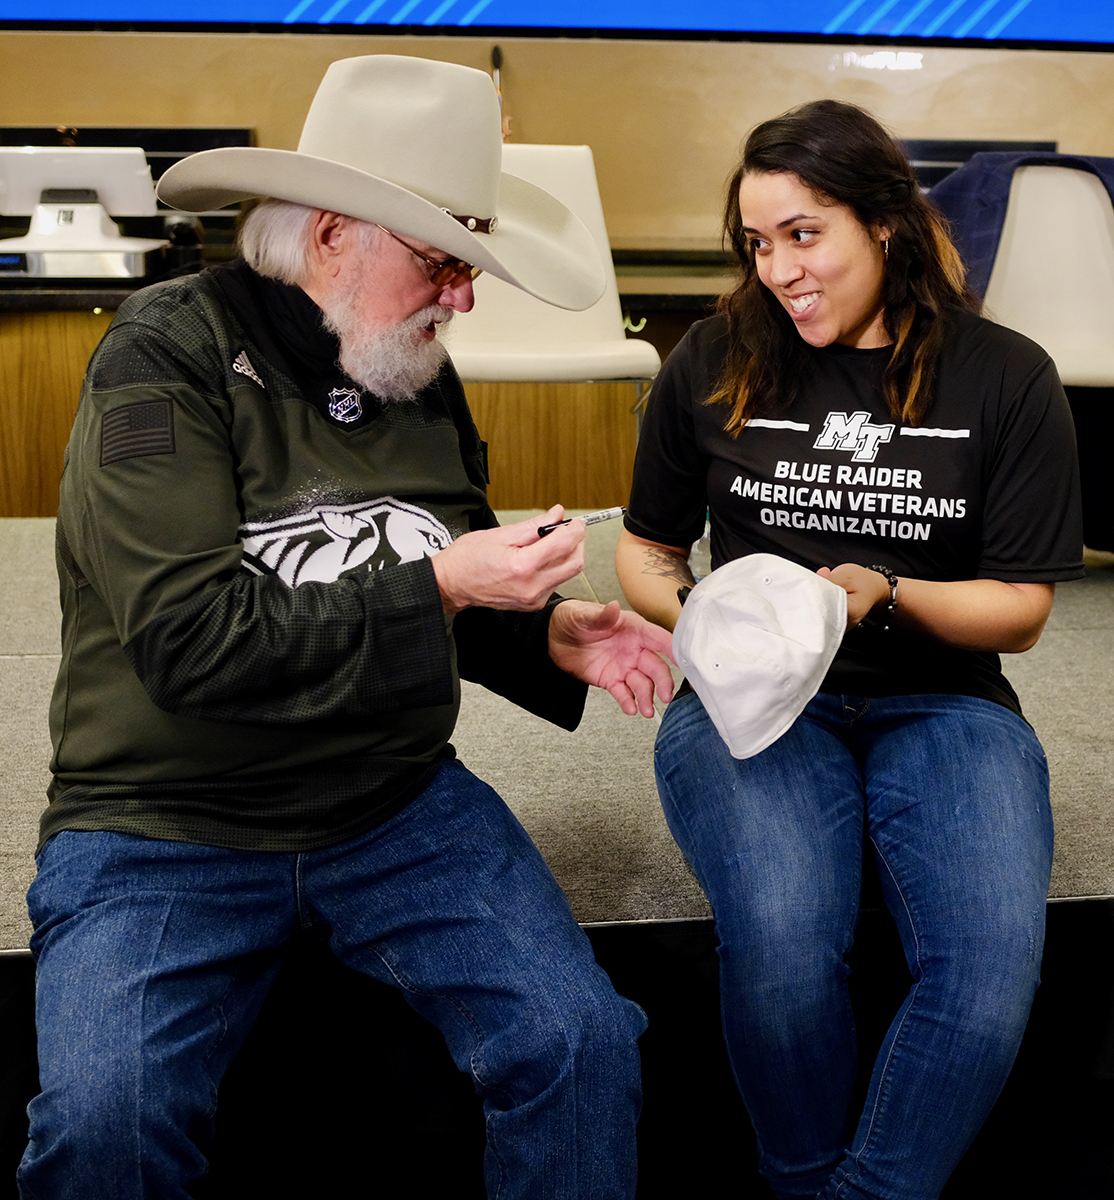 Country Music legend and MTSU Charlie and Hazel Daniels financial supporter Charlie Daniels signs an autograph for MTSU student veteran Teresa Carter, 2019-20 president of the Blue Raider American Veterans Organization, or BRAVO, Monday, March 2, during the MTSU-Nashville Predators announcement at Bridgestone Arena. (MTSU photo by David Foster)